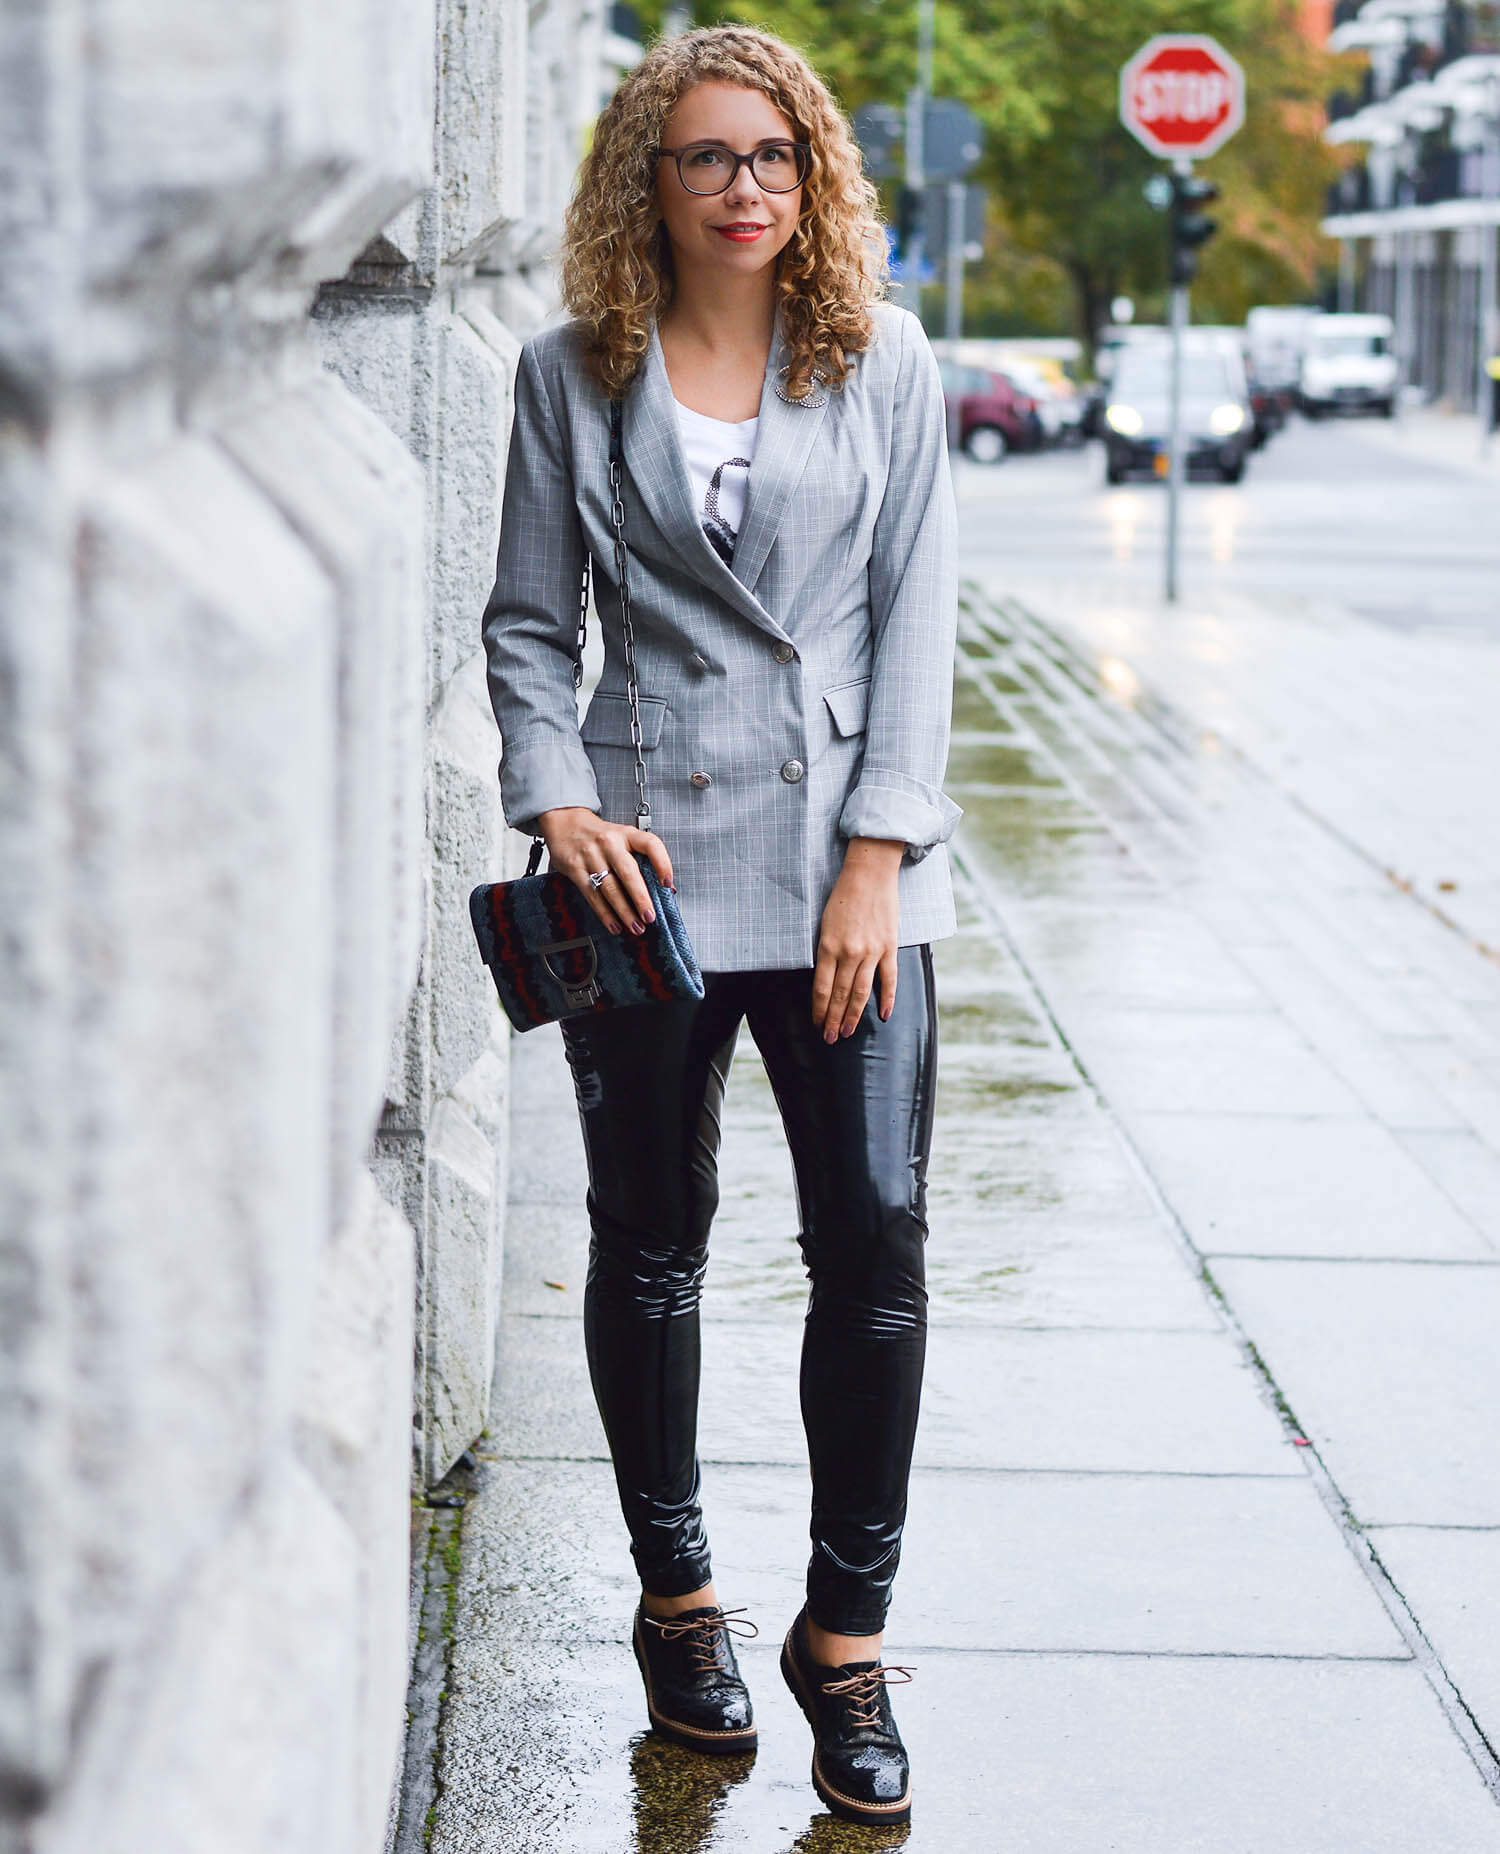 Kationette-fashionblog-nrw-Outfit-Glencheck-Blazer-Vinyl-Pants-Coccinelle-Bag-streetstyle